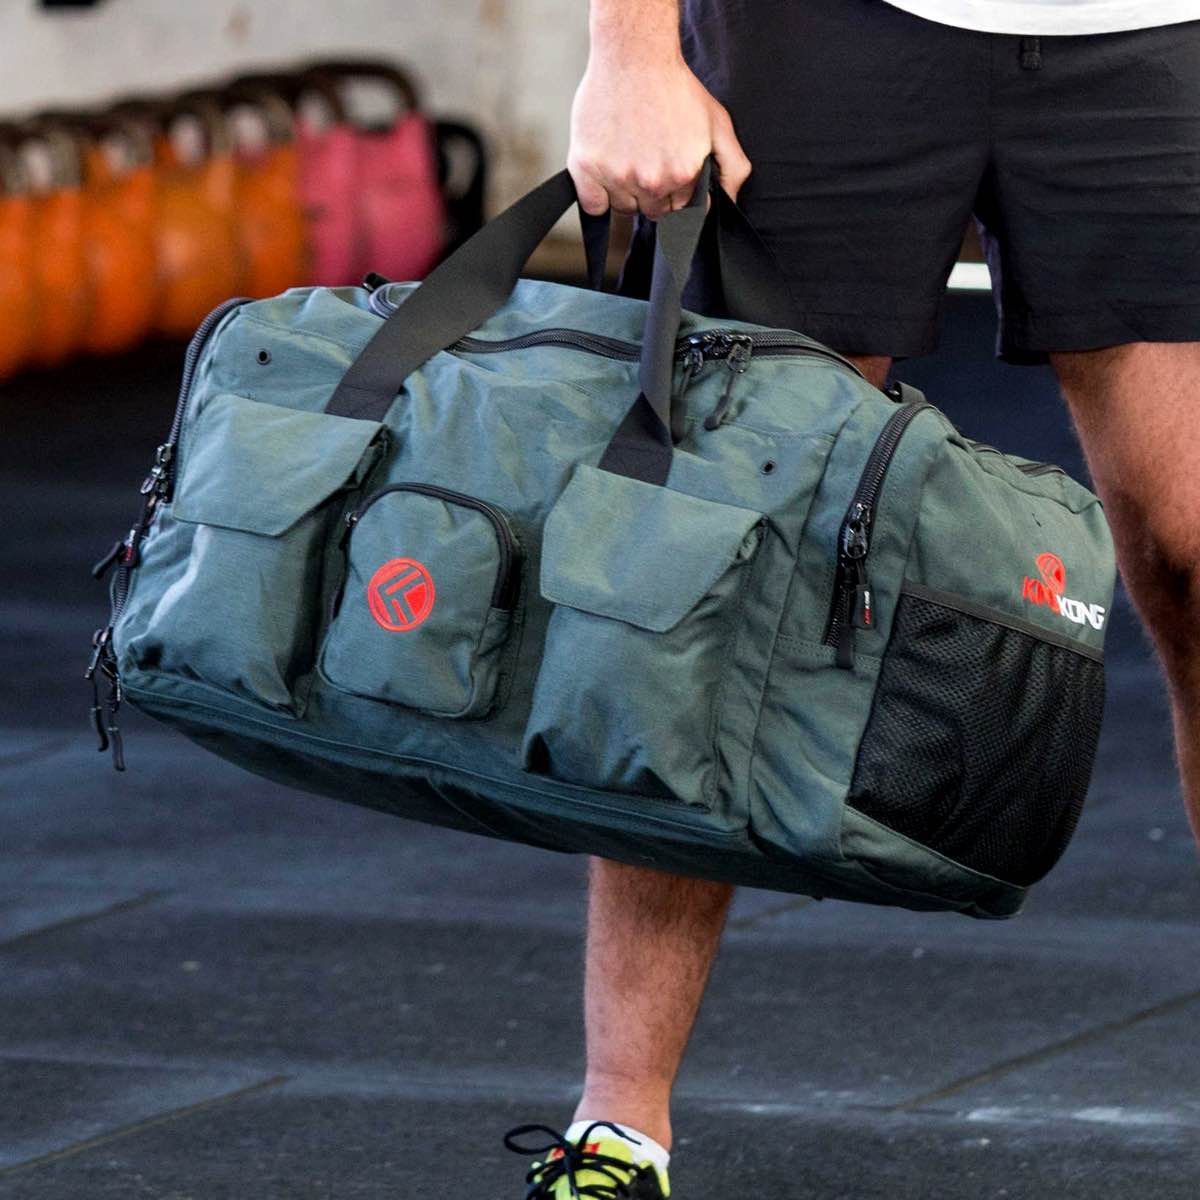 King Kong Crossfit Trips Por Travel Duffel Bags Accessories